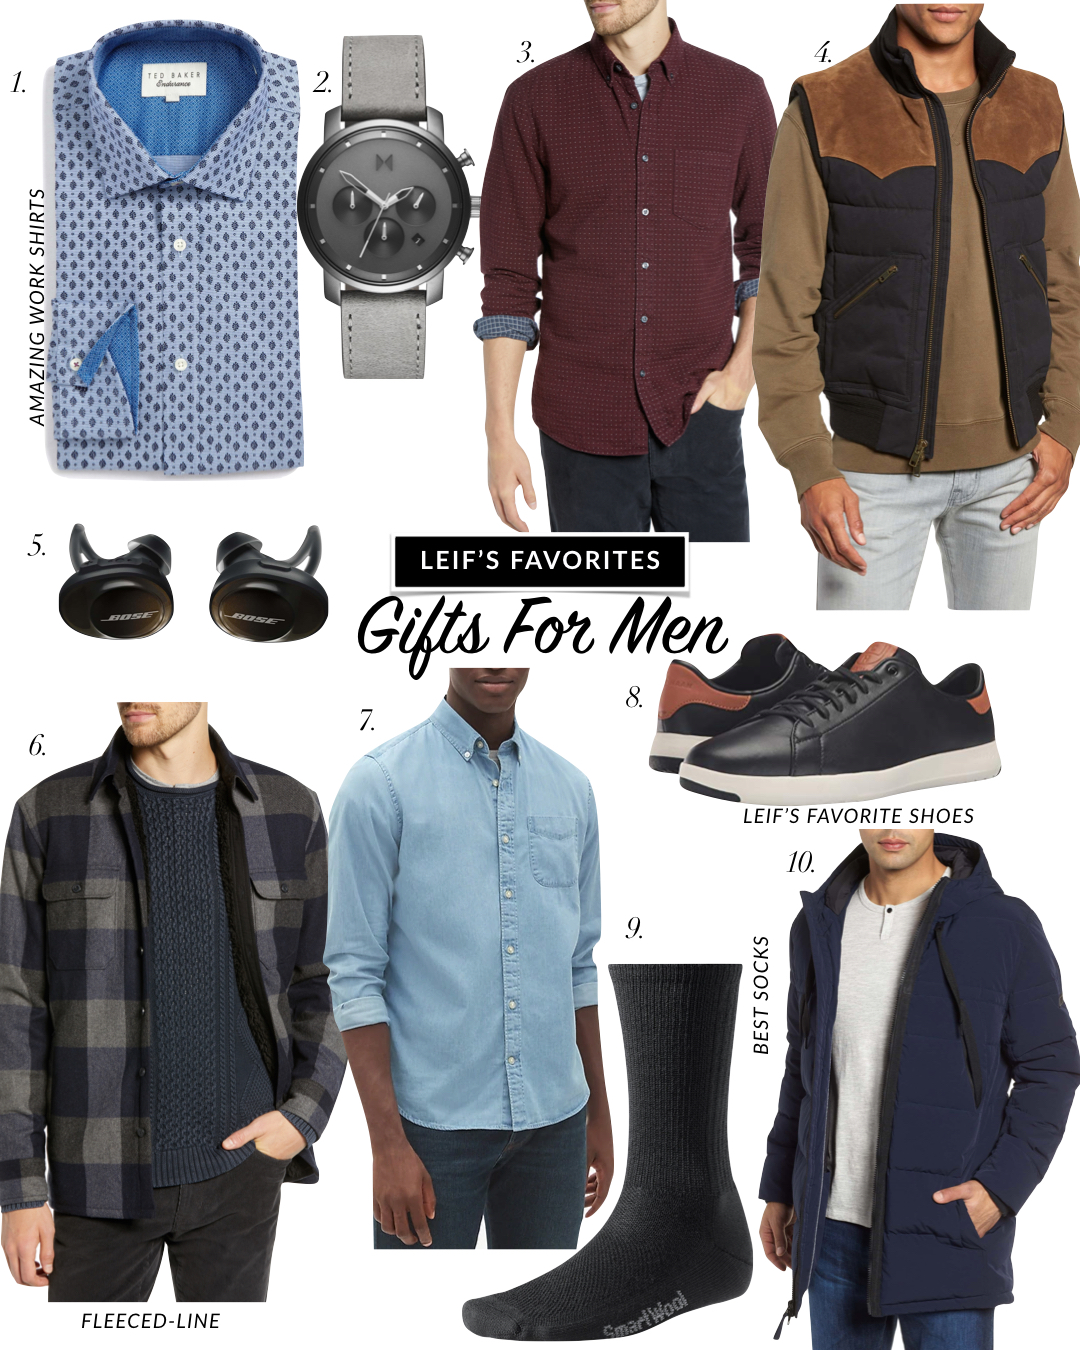 gifts for men christmas 2018 gypsy tan